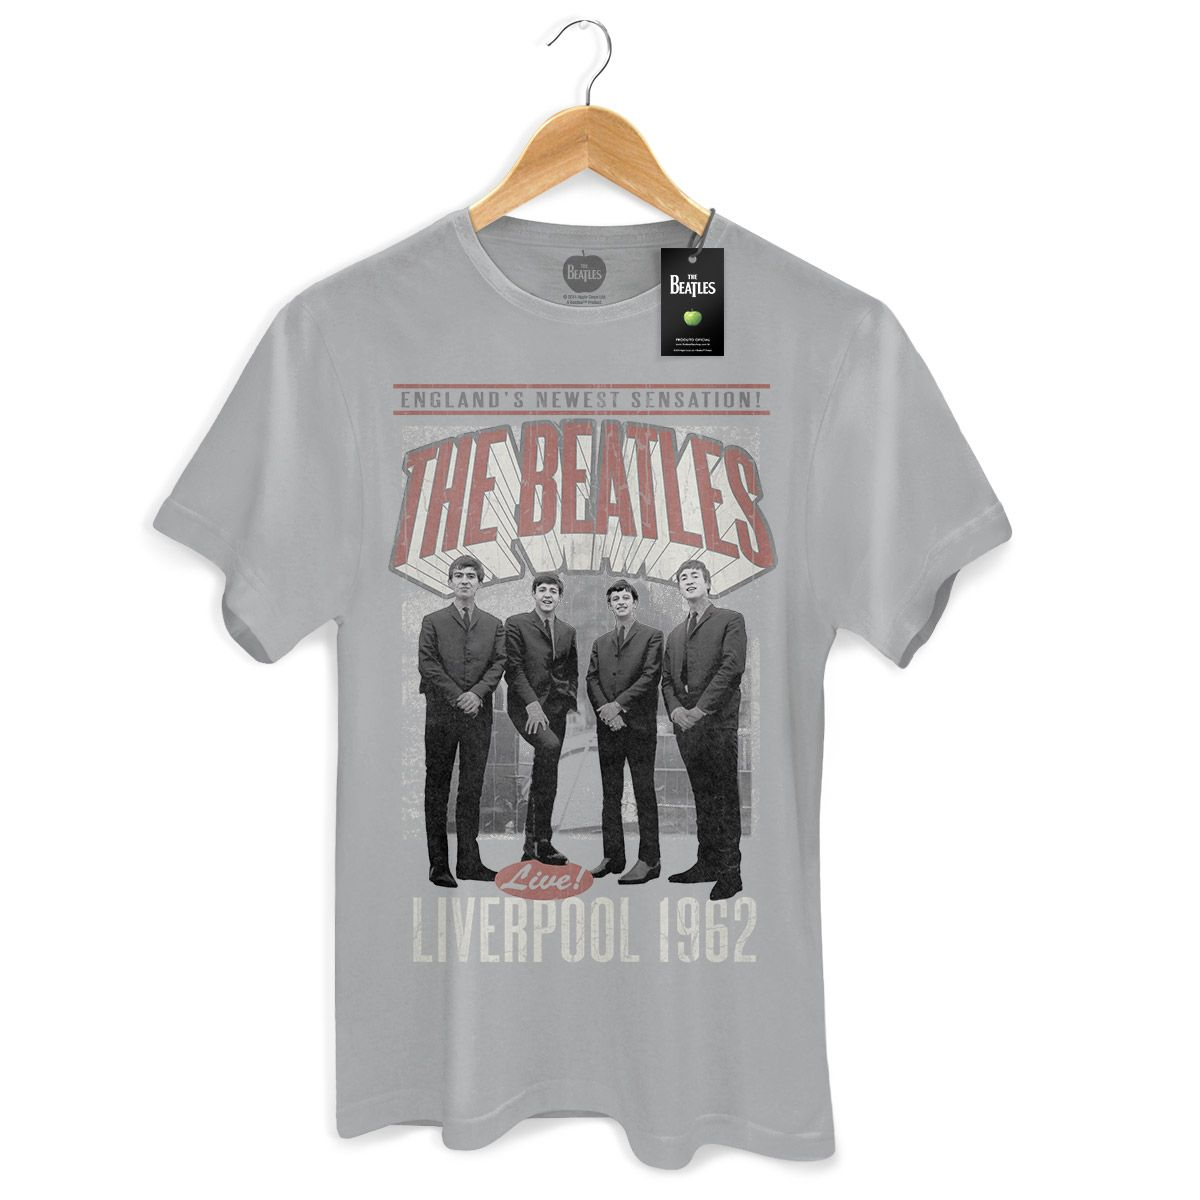 Camiseta Masculina The Beatles Liverpool 1962